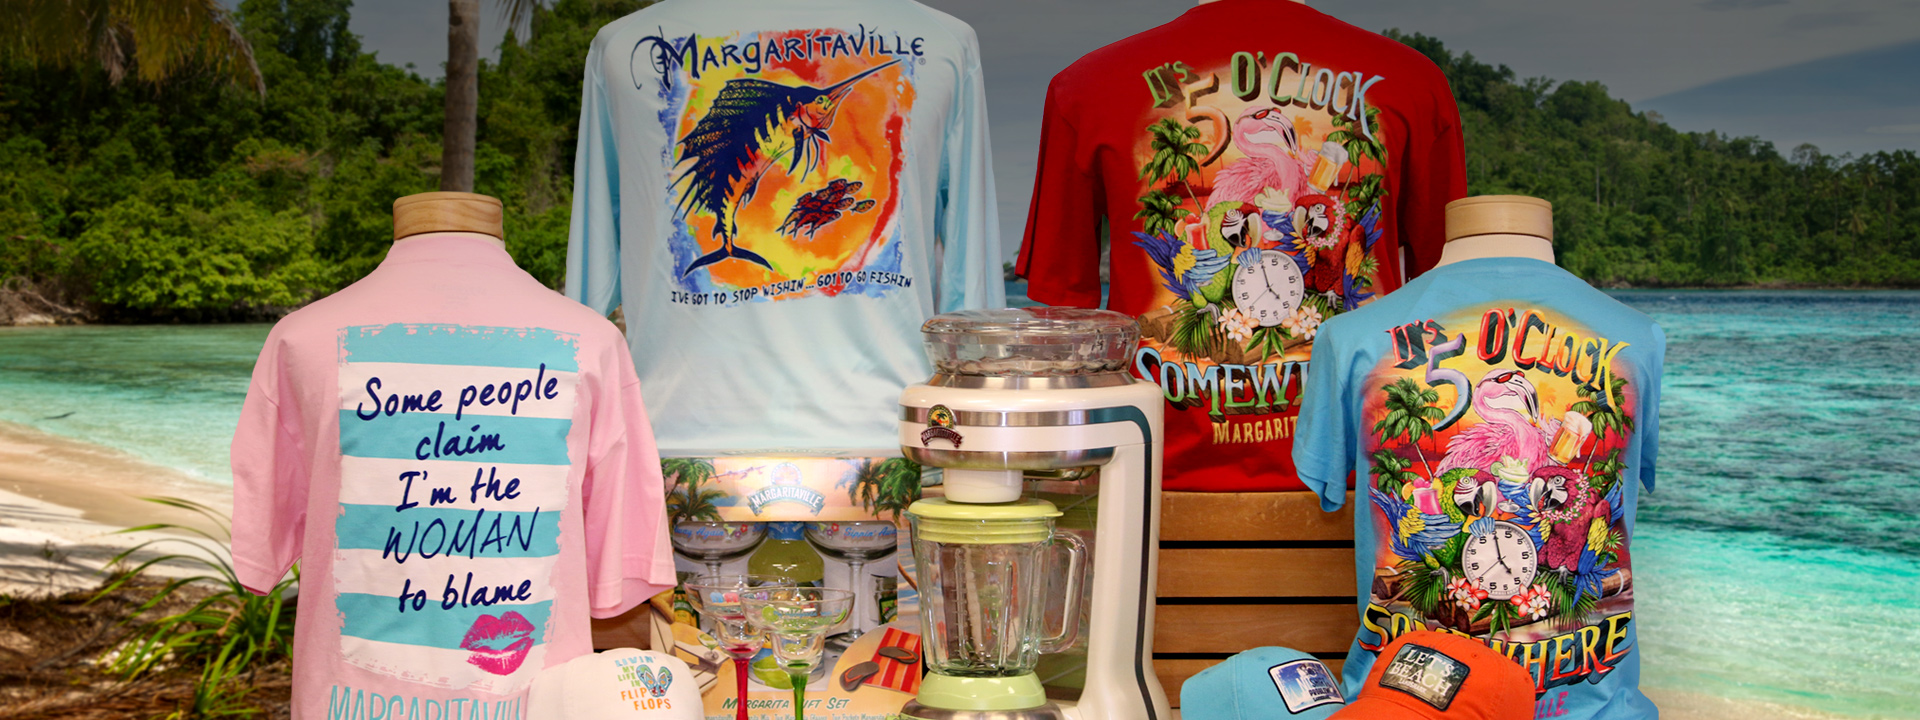 Jimmy Buffett Margaritaville Myrtle Beach Menu